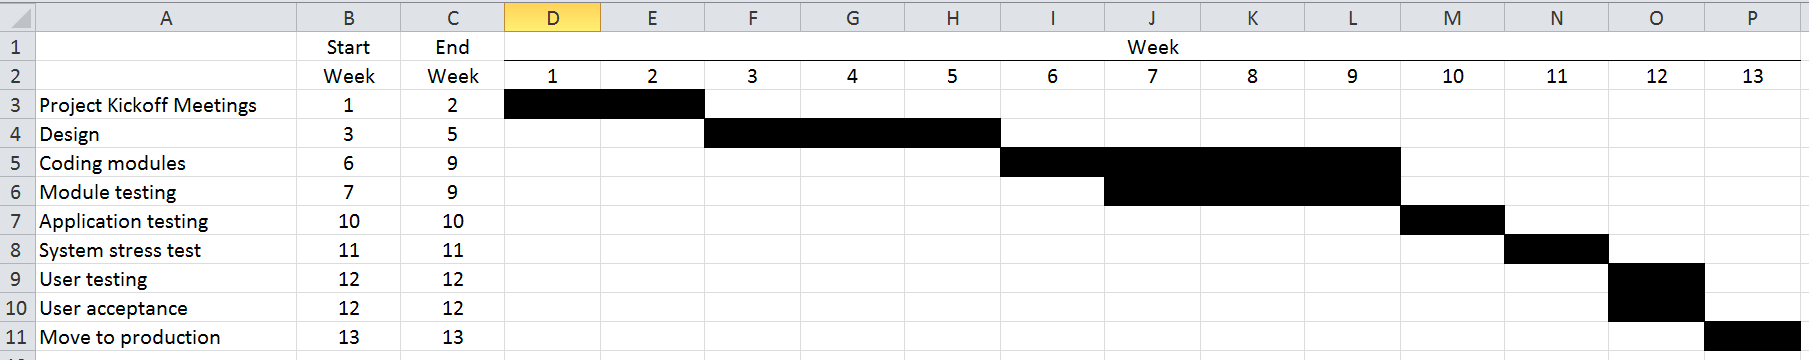 Gantt chart for project scheduling in excel cpa self study self its an easy way to create a gantt chart without special software you just need to know the if function the and function and conditional formatting ccuart Choice Image